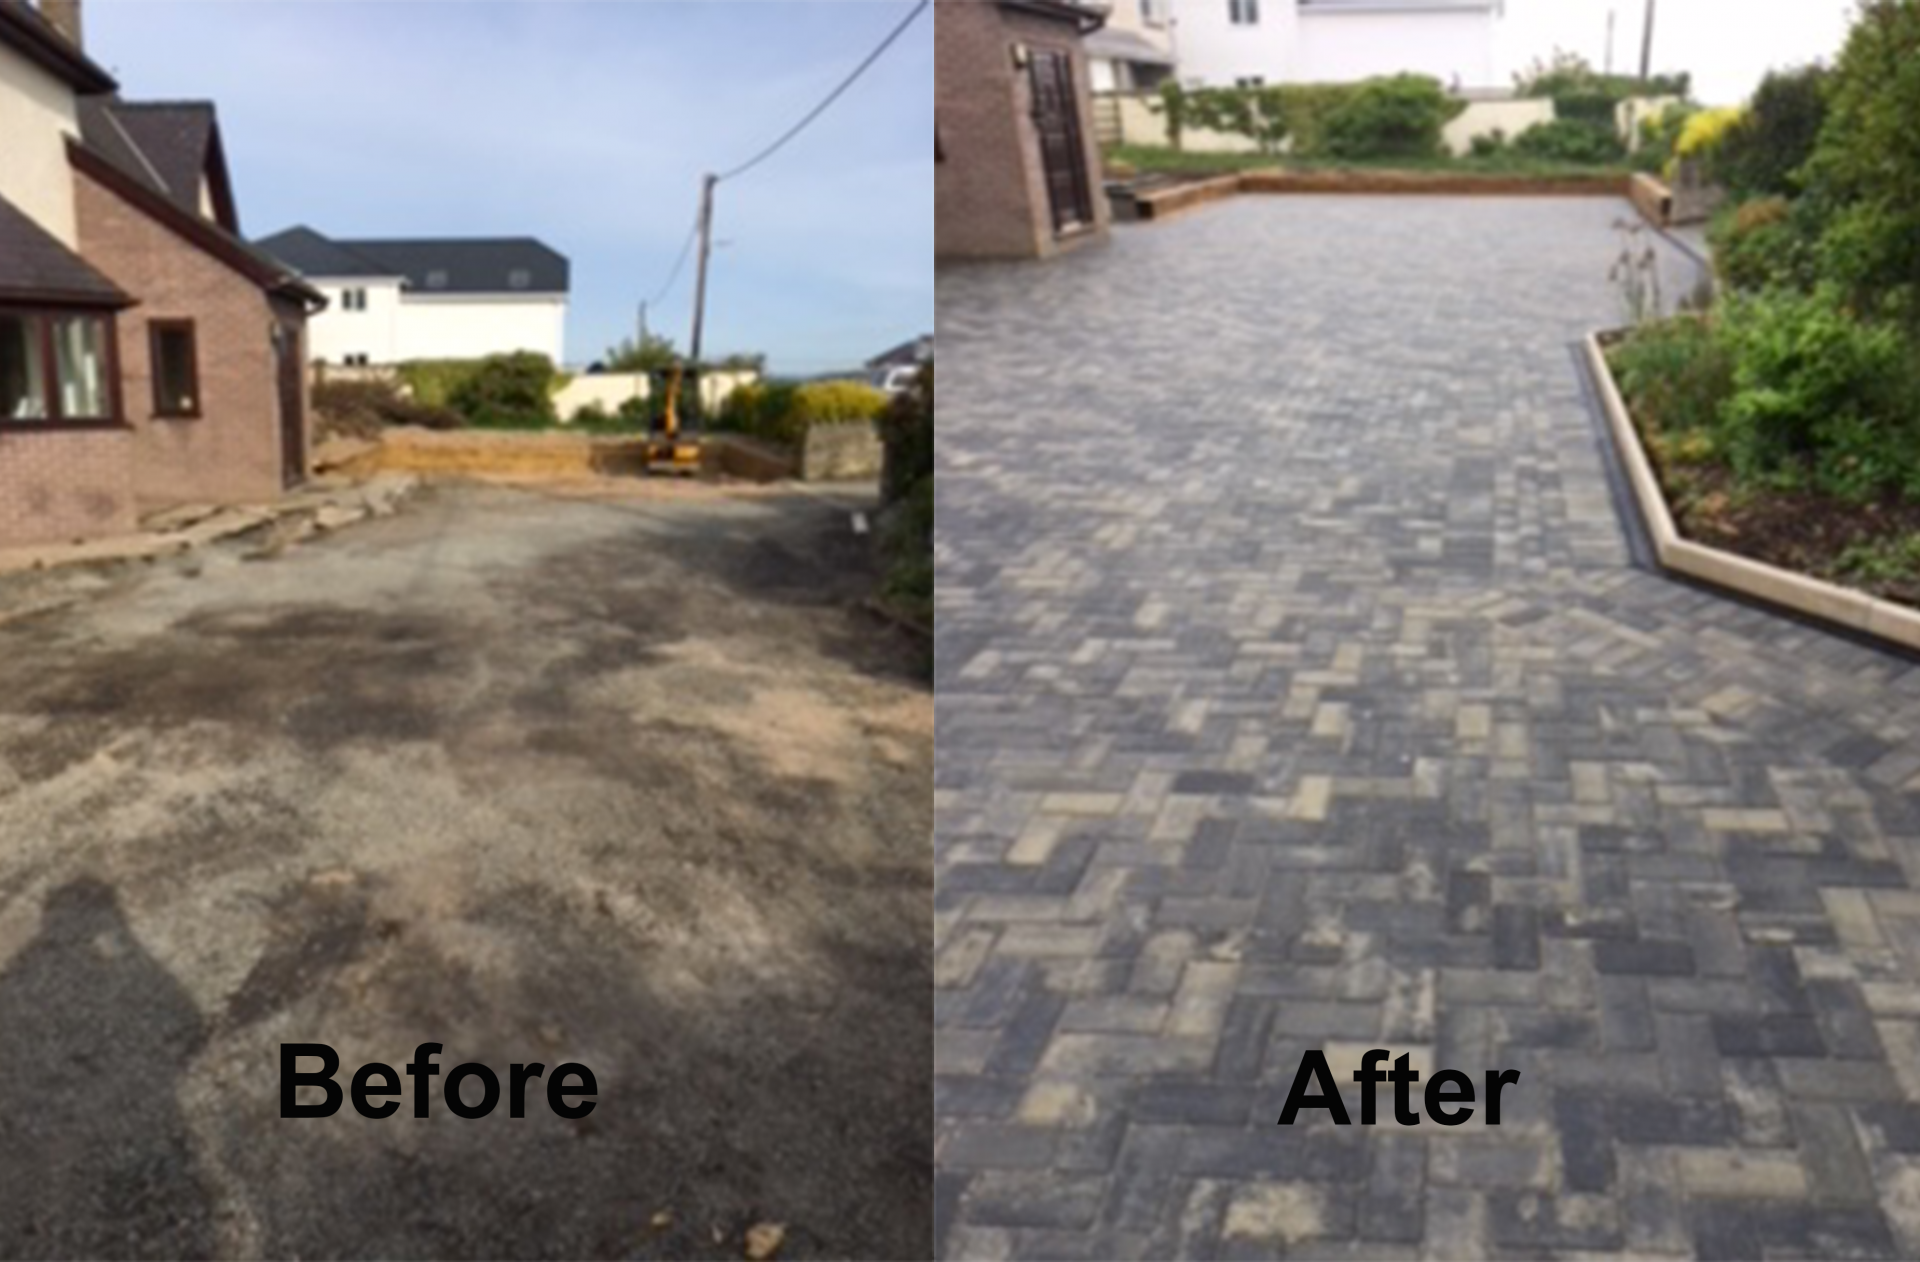 Before and after - new driveway with drainage